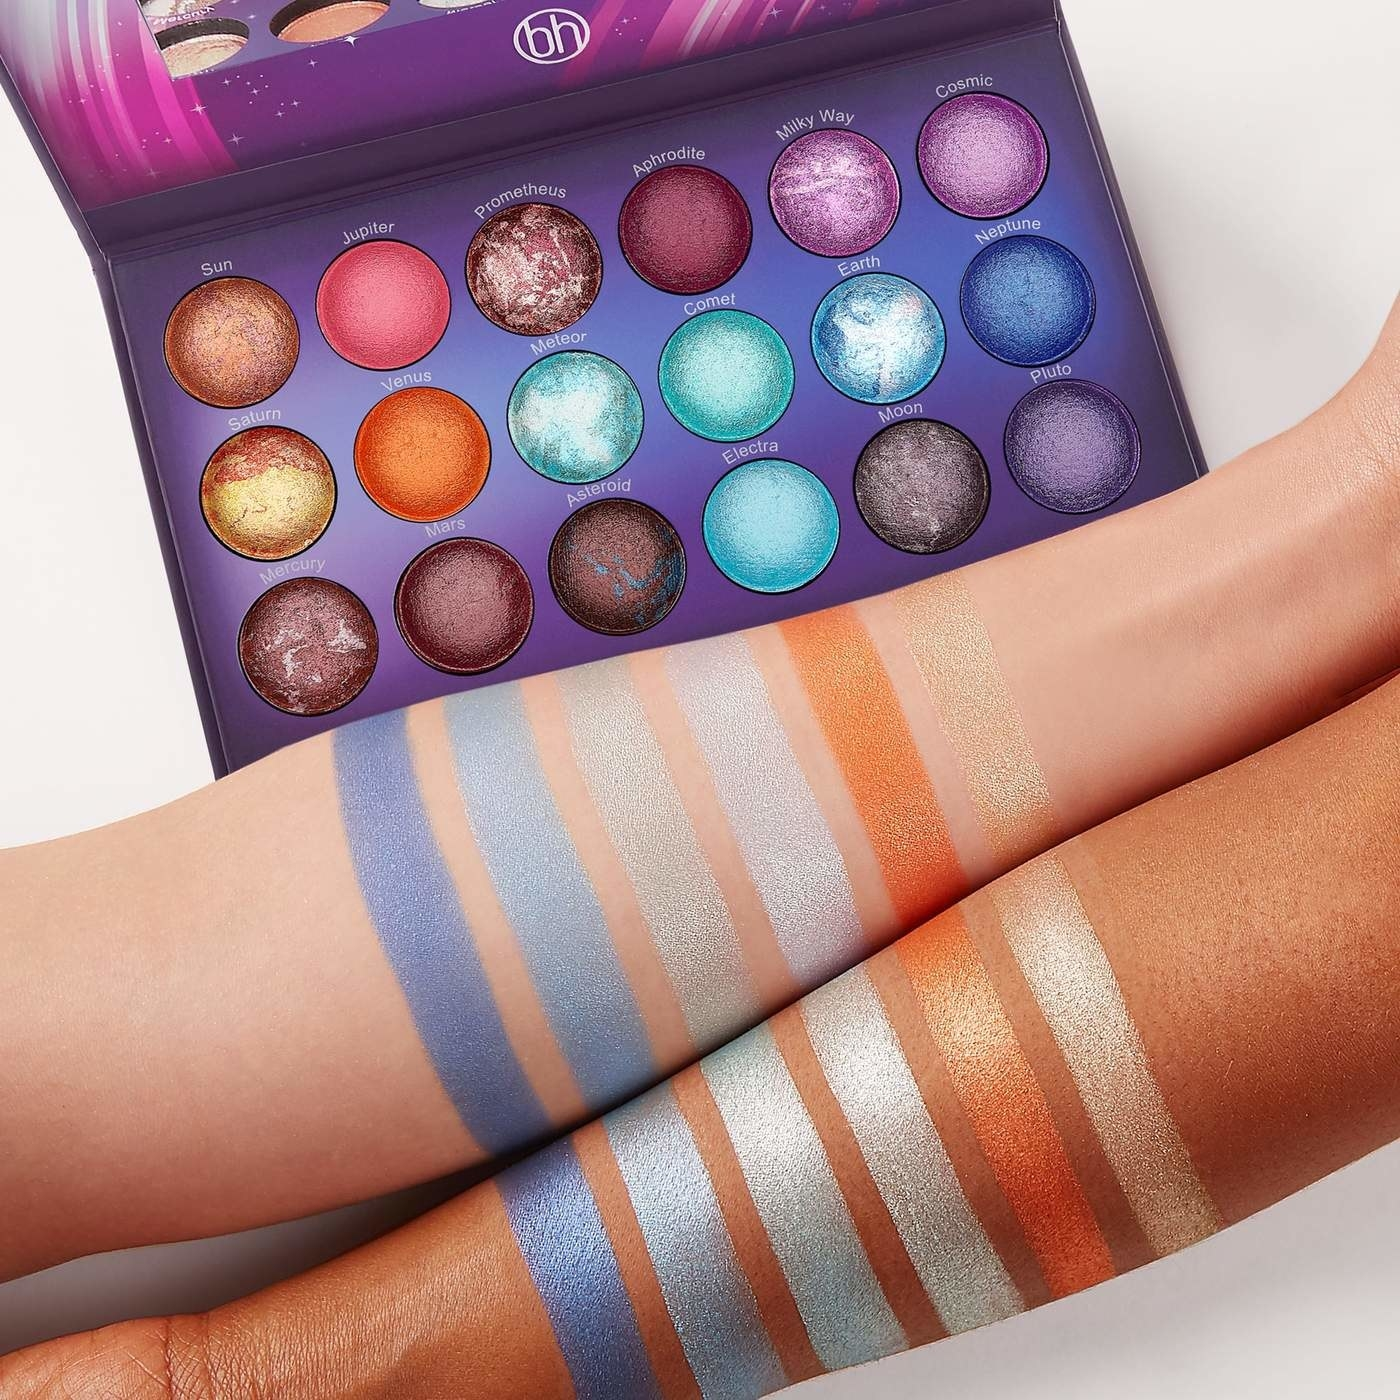 the galaxy chic palette and two arms with swatches of six shades on them